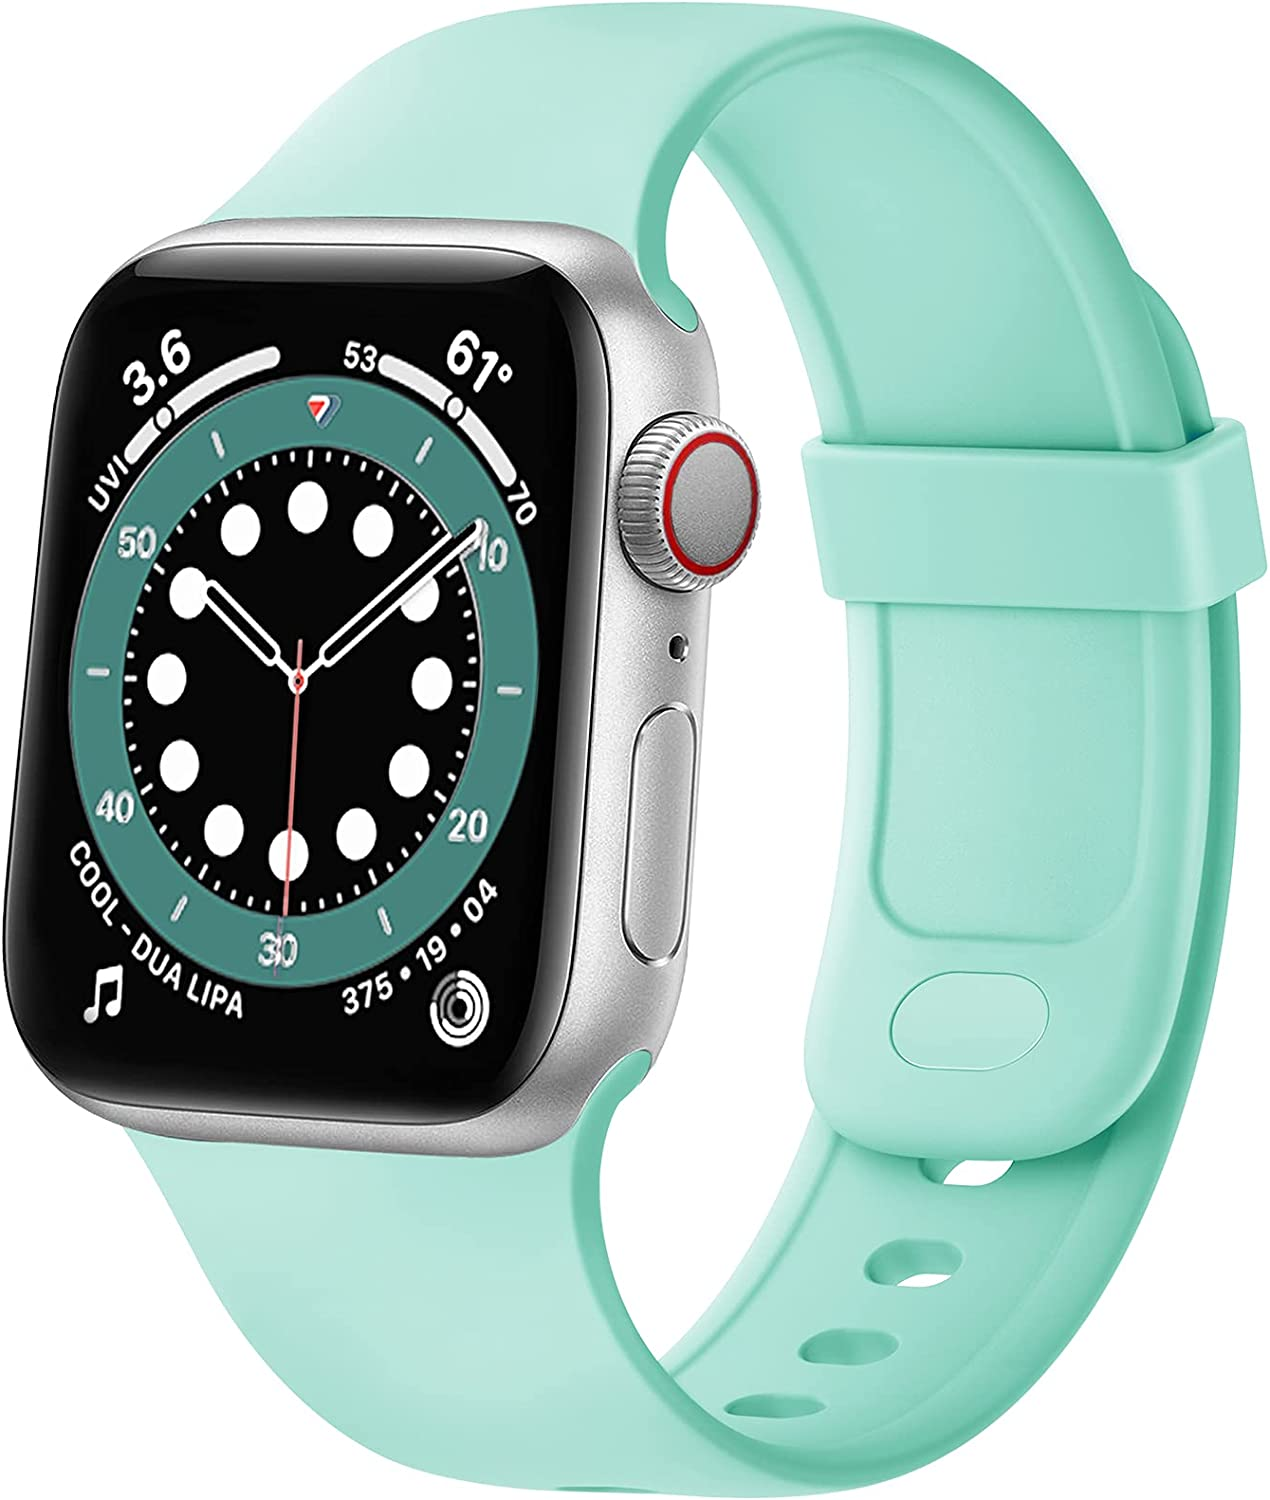 SVISVIPA Sport Bands Compatible with Apple Watch Bands 42mm 44mm, Soft Silicone Wristbands Women Men Replacement Strap for iWatch Series SE/6/5/4/3/2/1,Marine Green